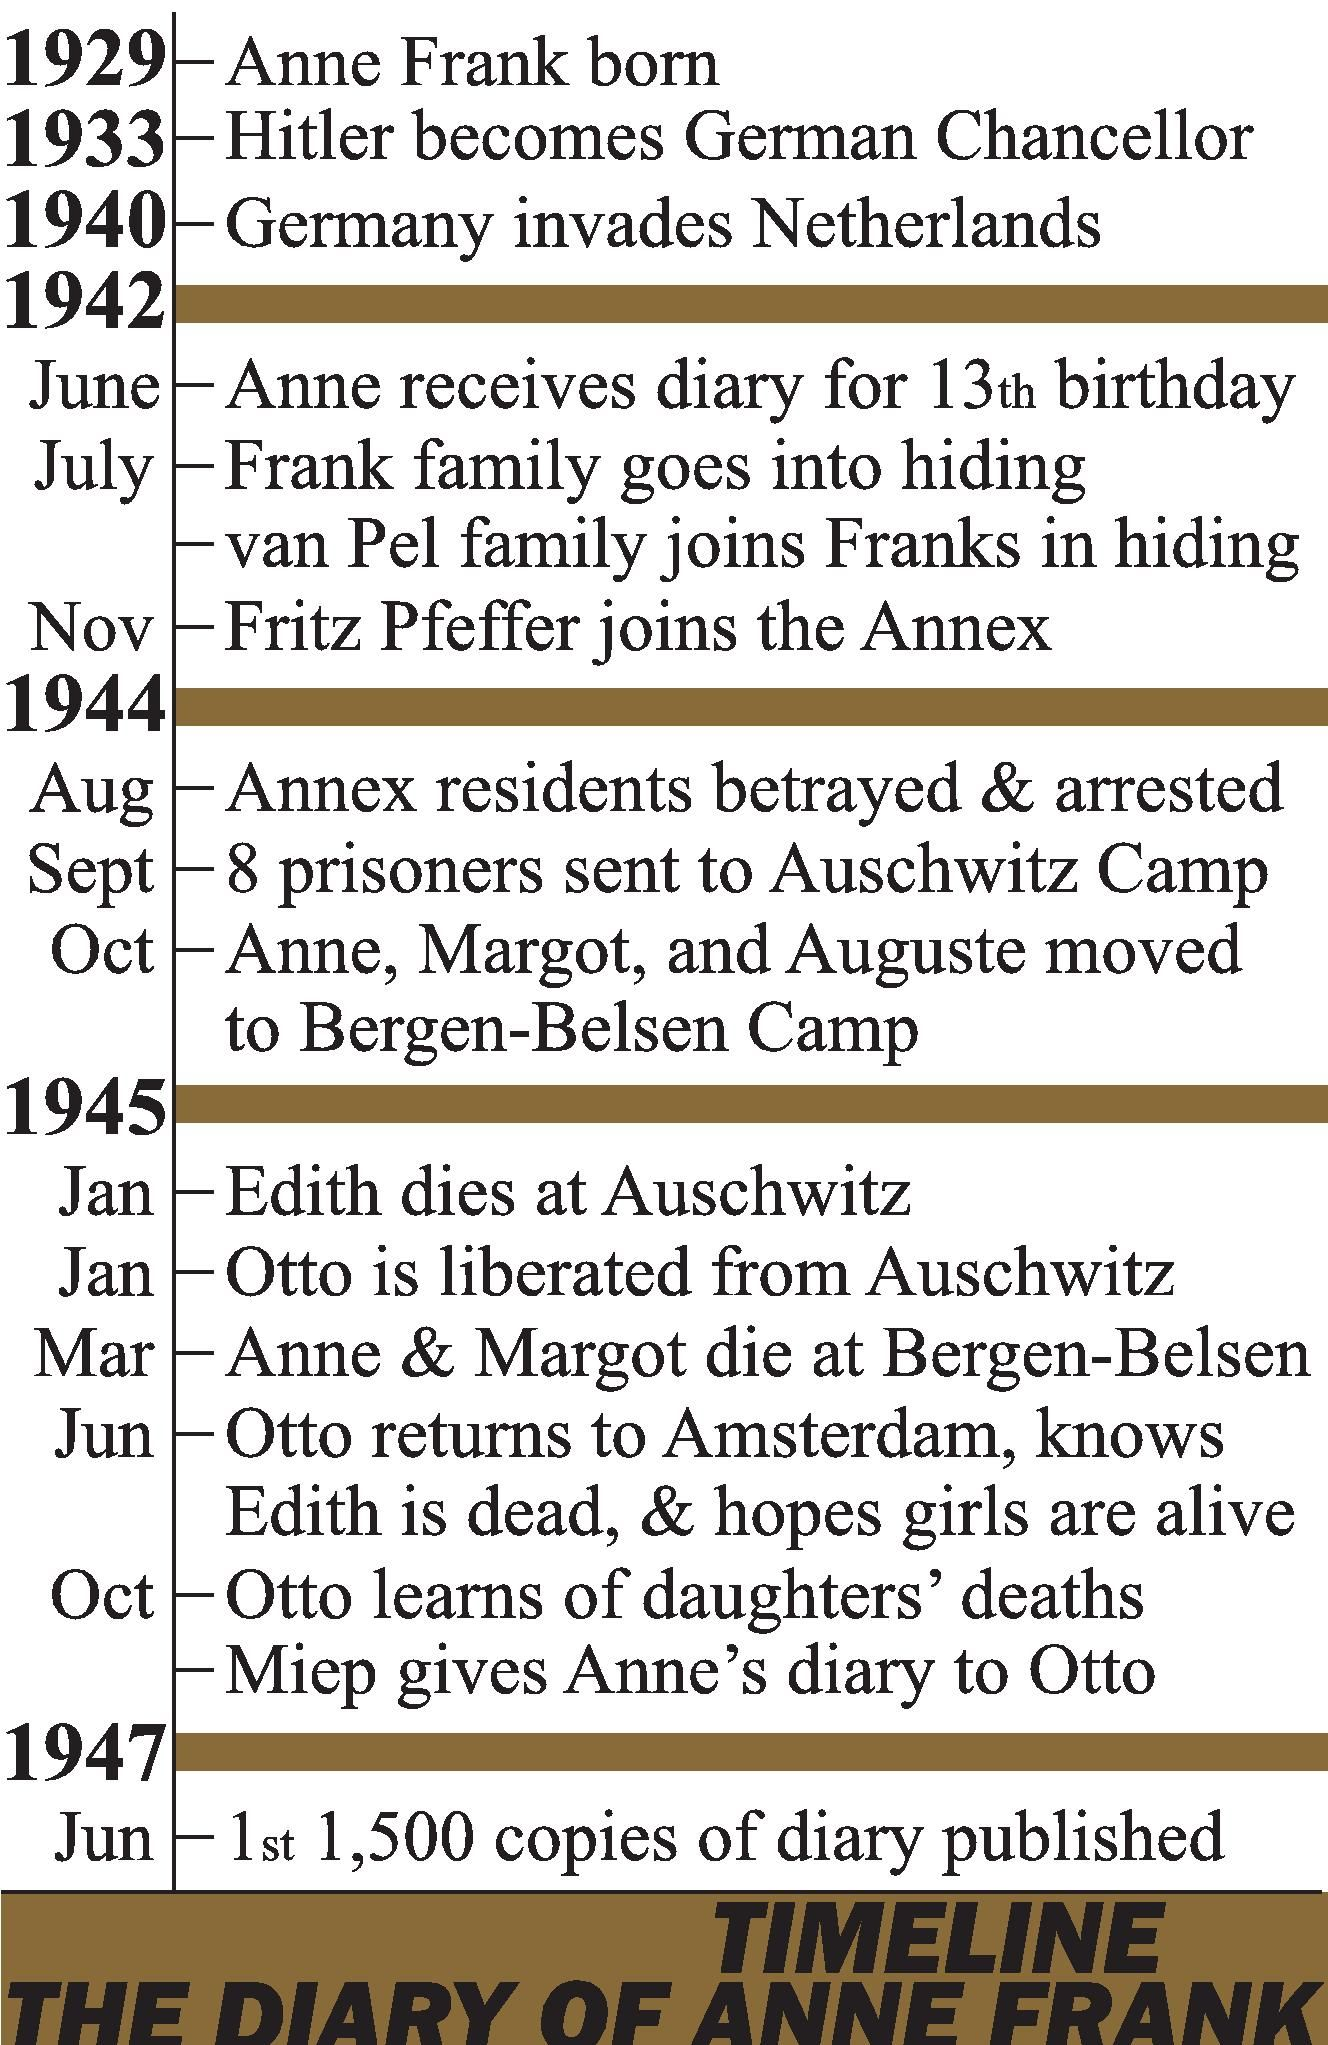 diary of anne frank timeline homeschool timeline diary of anne frank timeline